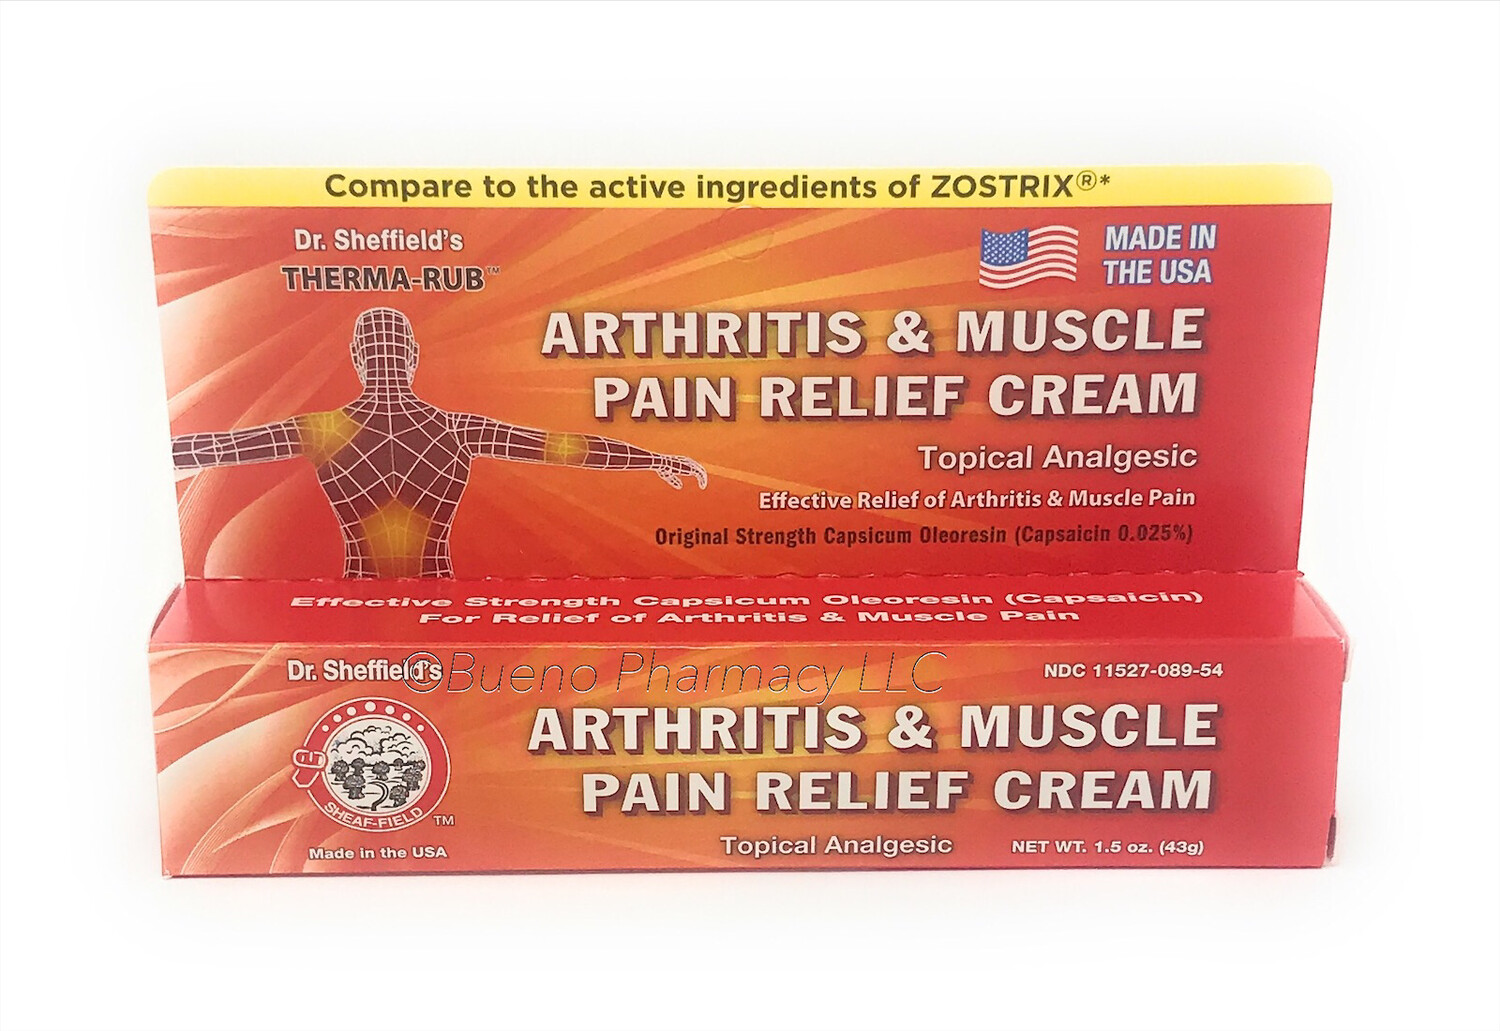 Dr. Sheffield's Arthritis & Muscle Pain Relief Cream